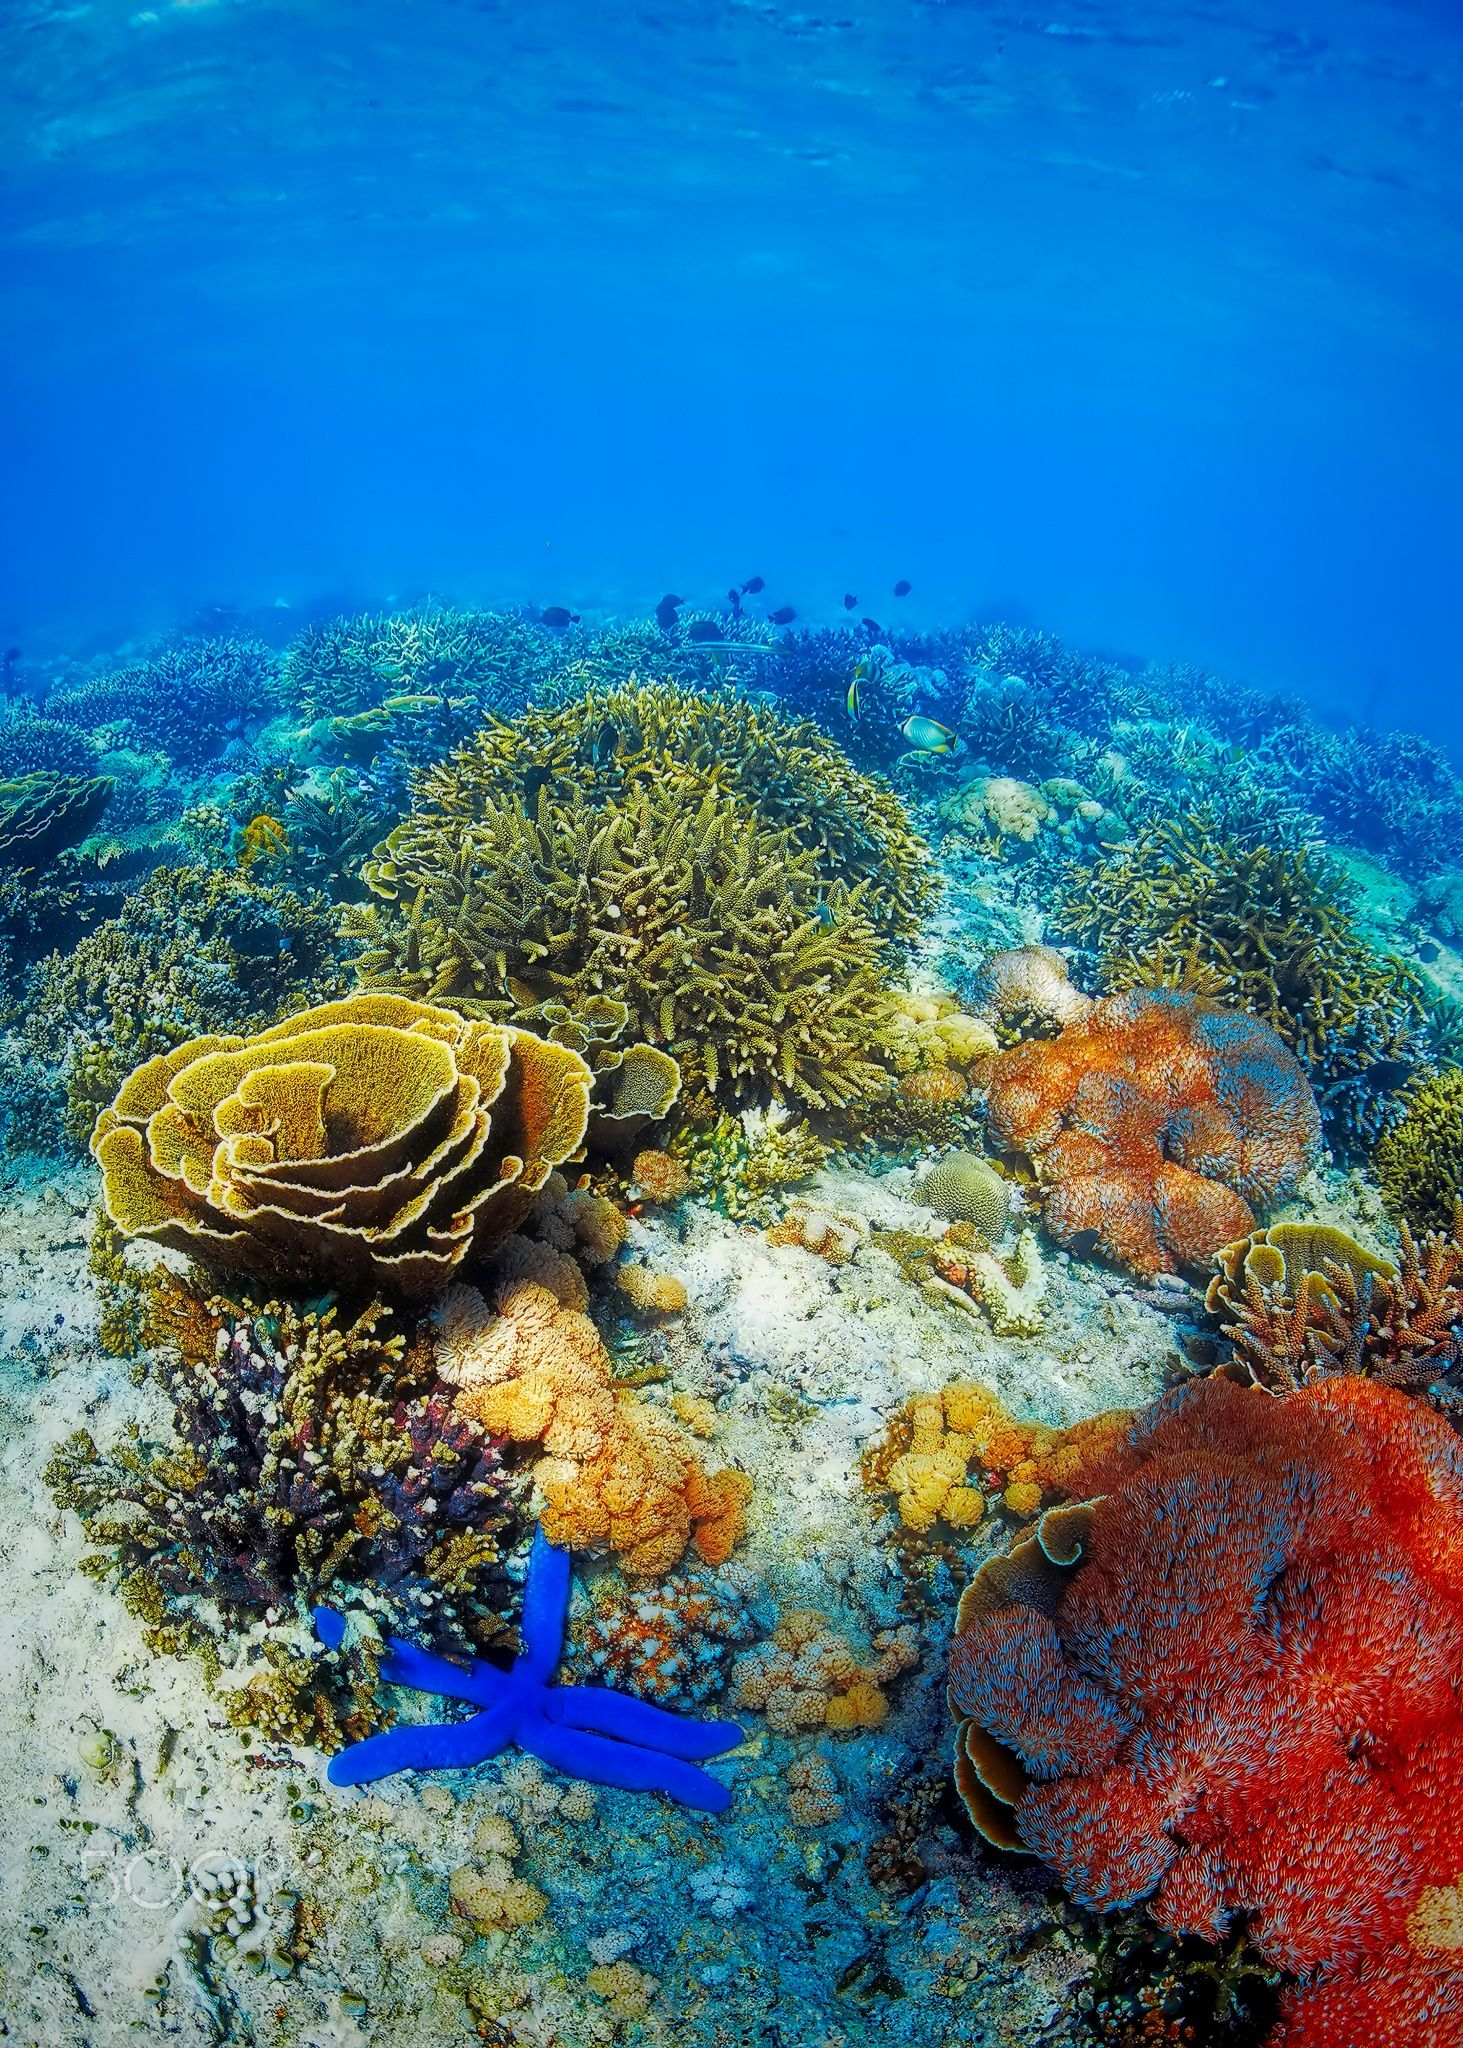 Underwater Landscape Coral Reef Photography Sea And Ocean Beautiful Sea Creatures